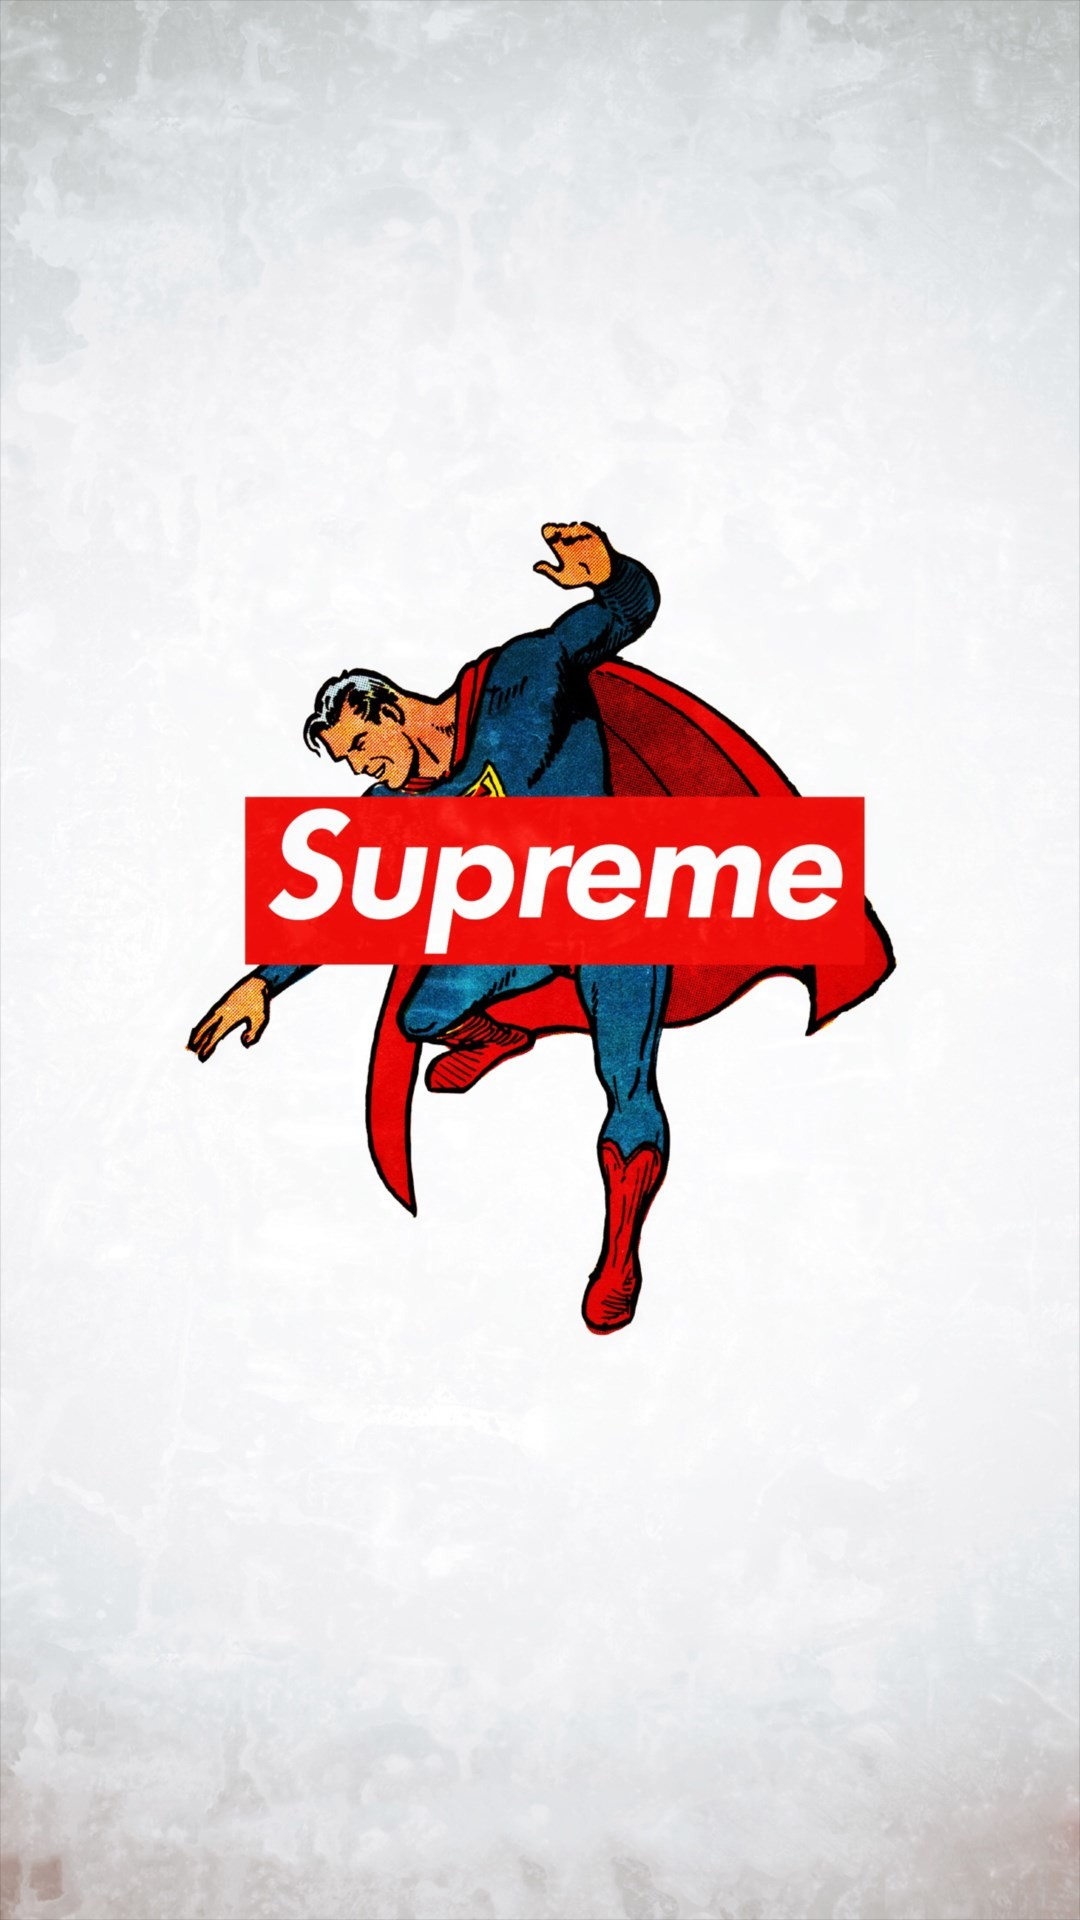 Free Download Supreme Wallpaper Iphone Xr Wallpaper Backgrounds